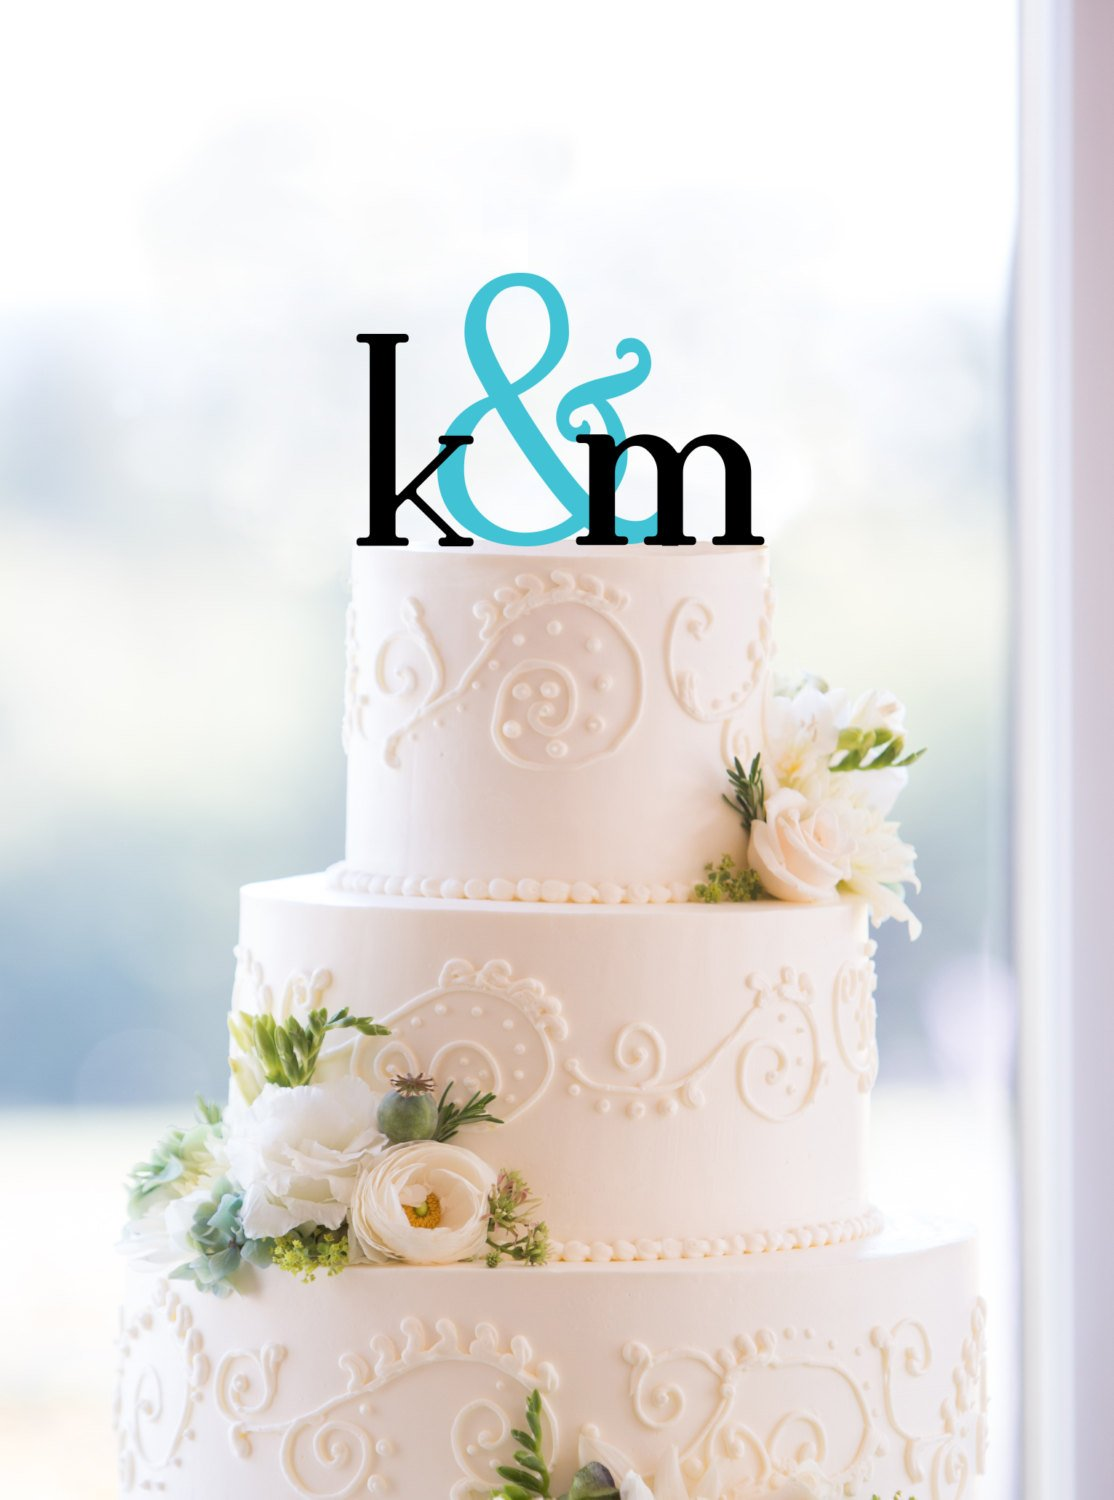 Monogram Wedding Cake Topper, Custom Two Initials and Ampersand Topper, Personalized Engagement Gift, Initial Monogram Wedding Topper (T053)